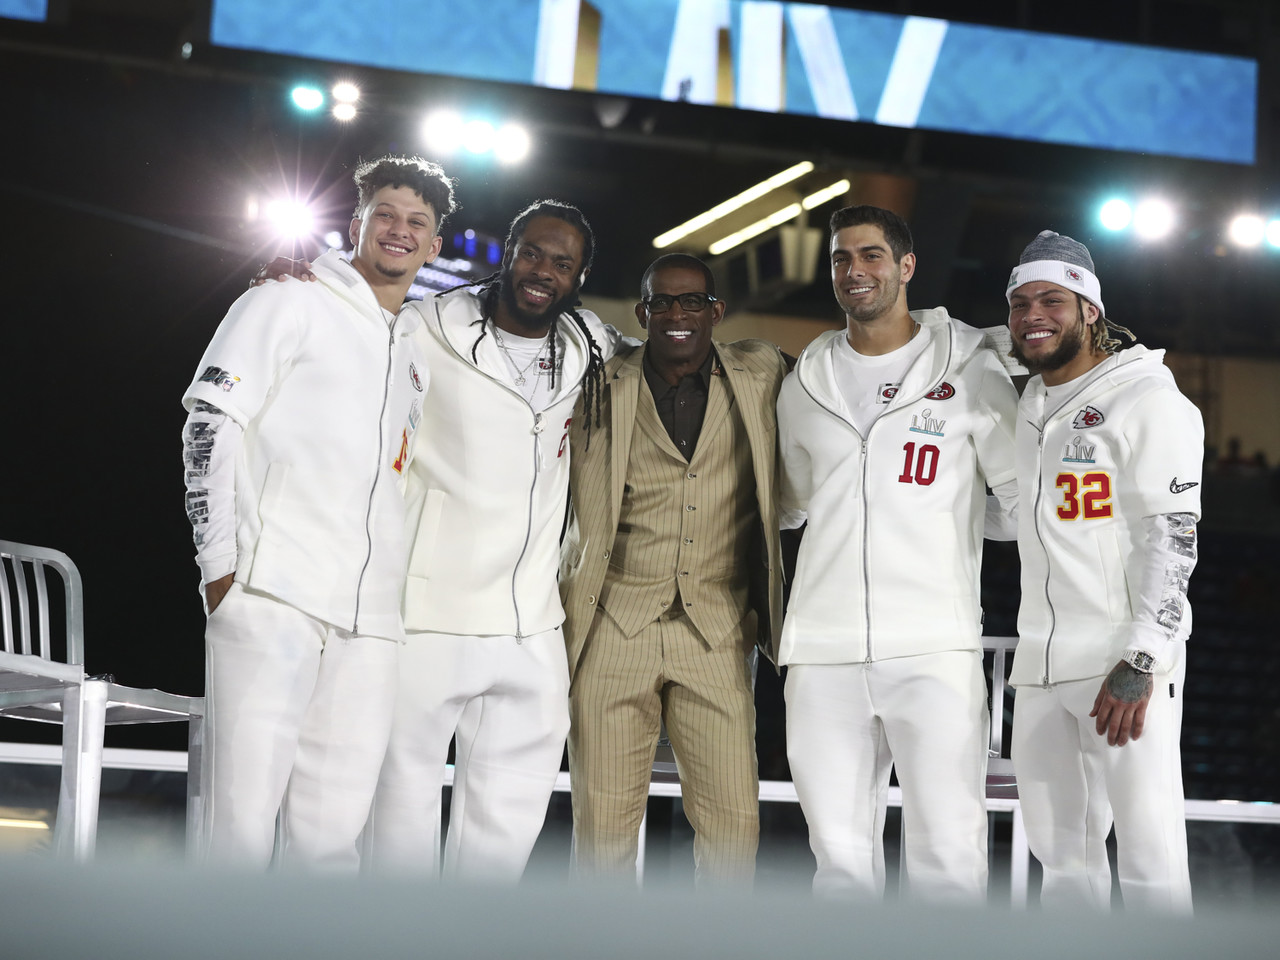 Kansas City Chiefs quarterback Patrick Mahomes (15), San Francisco 49ers cornerback Richard Sherman (25), Deion Sanders, San Francisco 49ers quarterback Jimmy Garoppolo (10) and Kansas City Chiefs strong safety Tyrann Mathieu (32) onstage during Opening Night ahead of Super Bowl LIV, Monday, Jan. 27, 2020 in Miami, Fla.